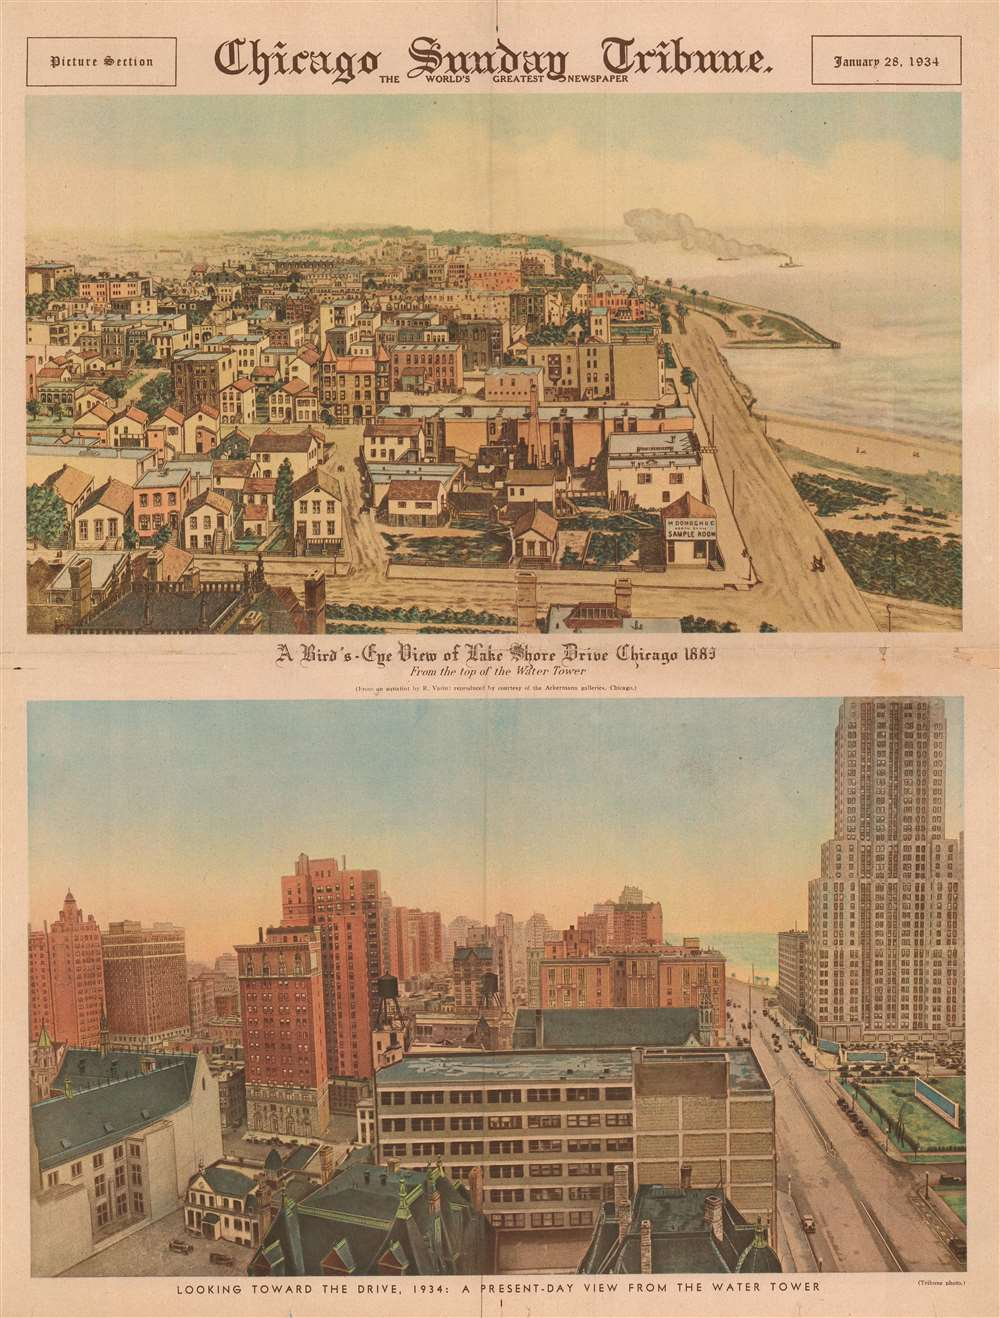 A Bird's-Eye View of Lake Shore Drive Chicago 1883 From the top of the Water Tower. Looking toward the Drive, 1934: A Present-Day View from the Water Tower. - Main View